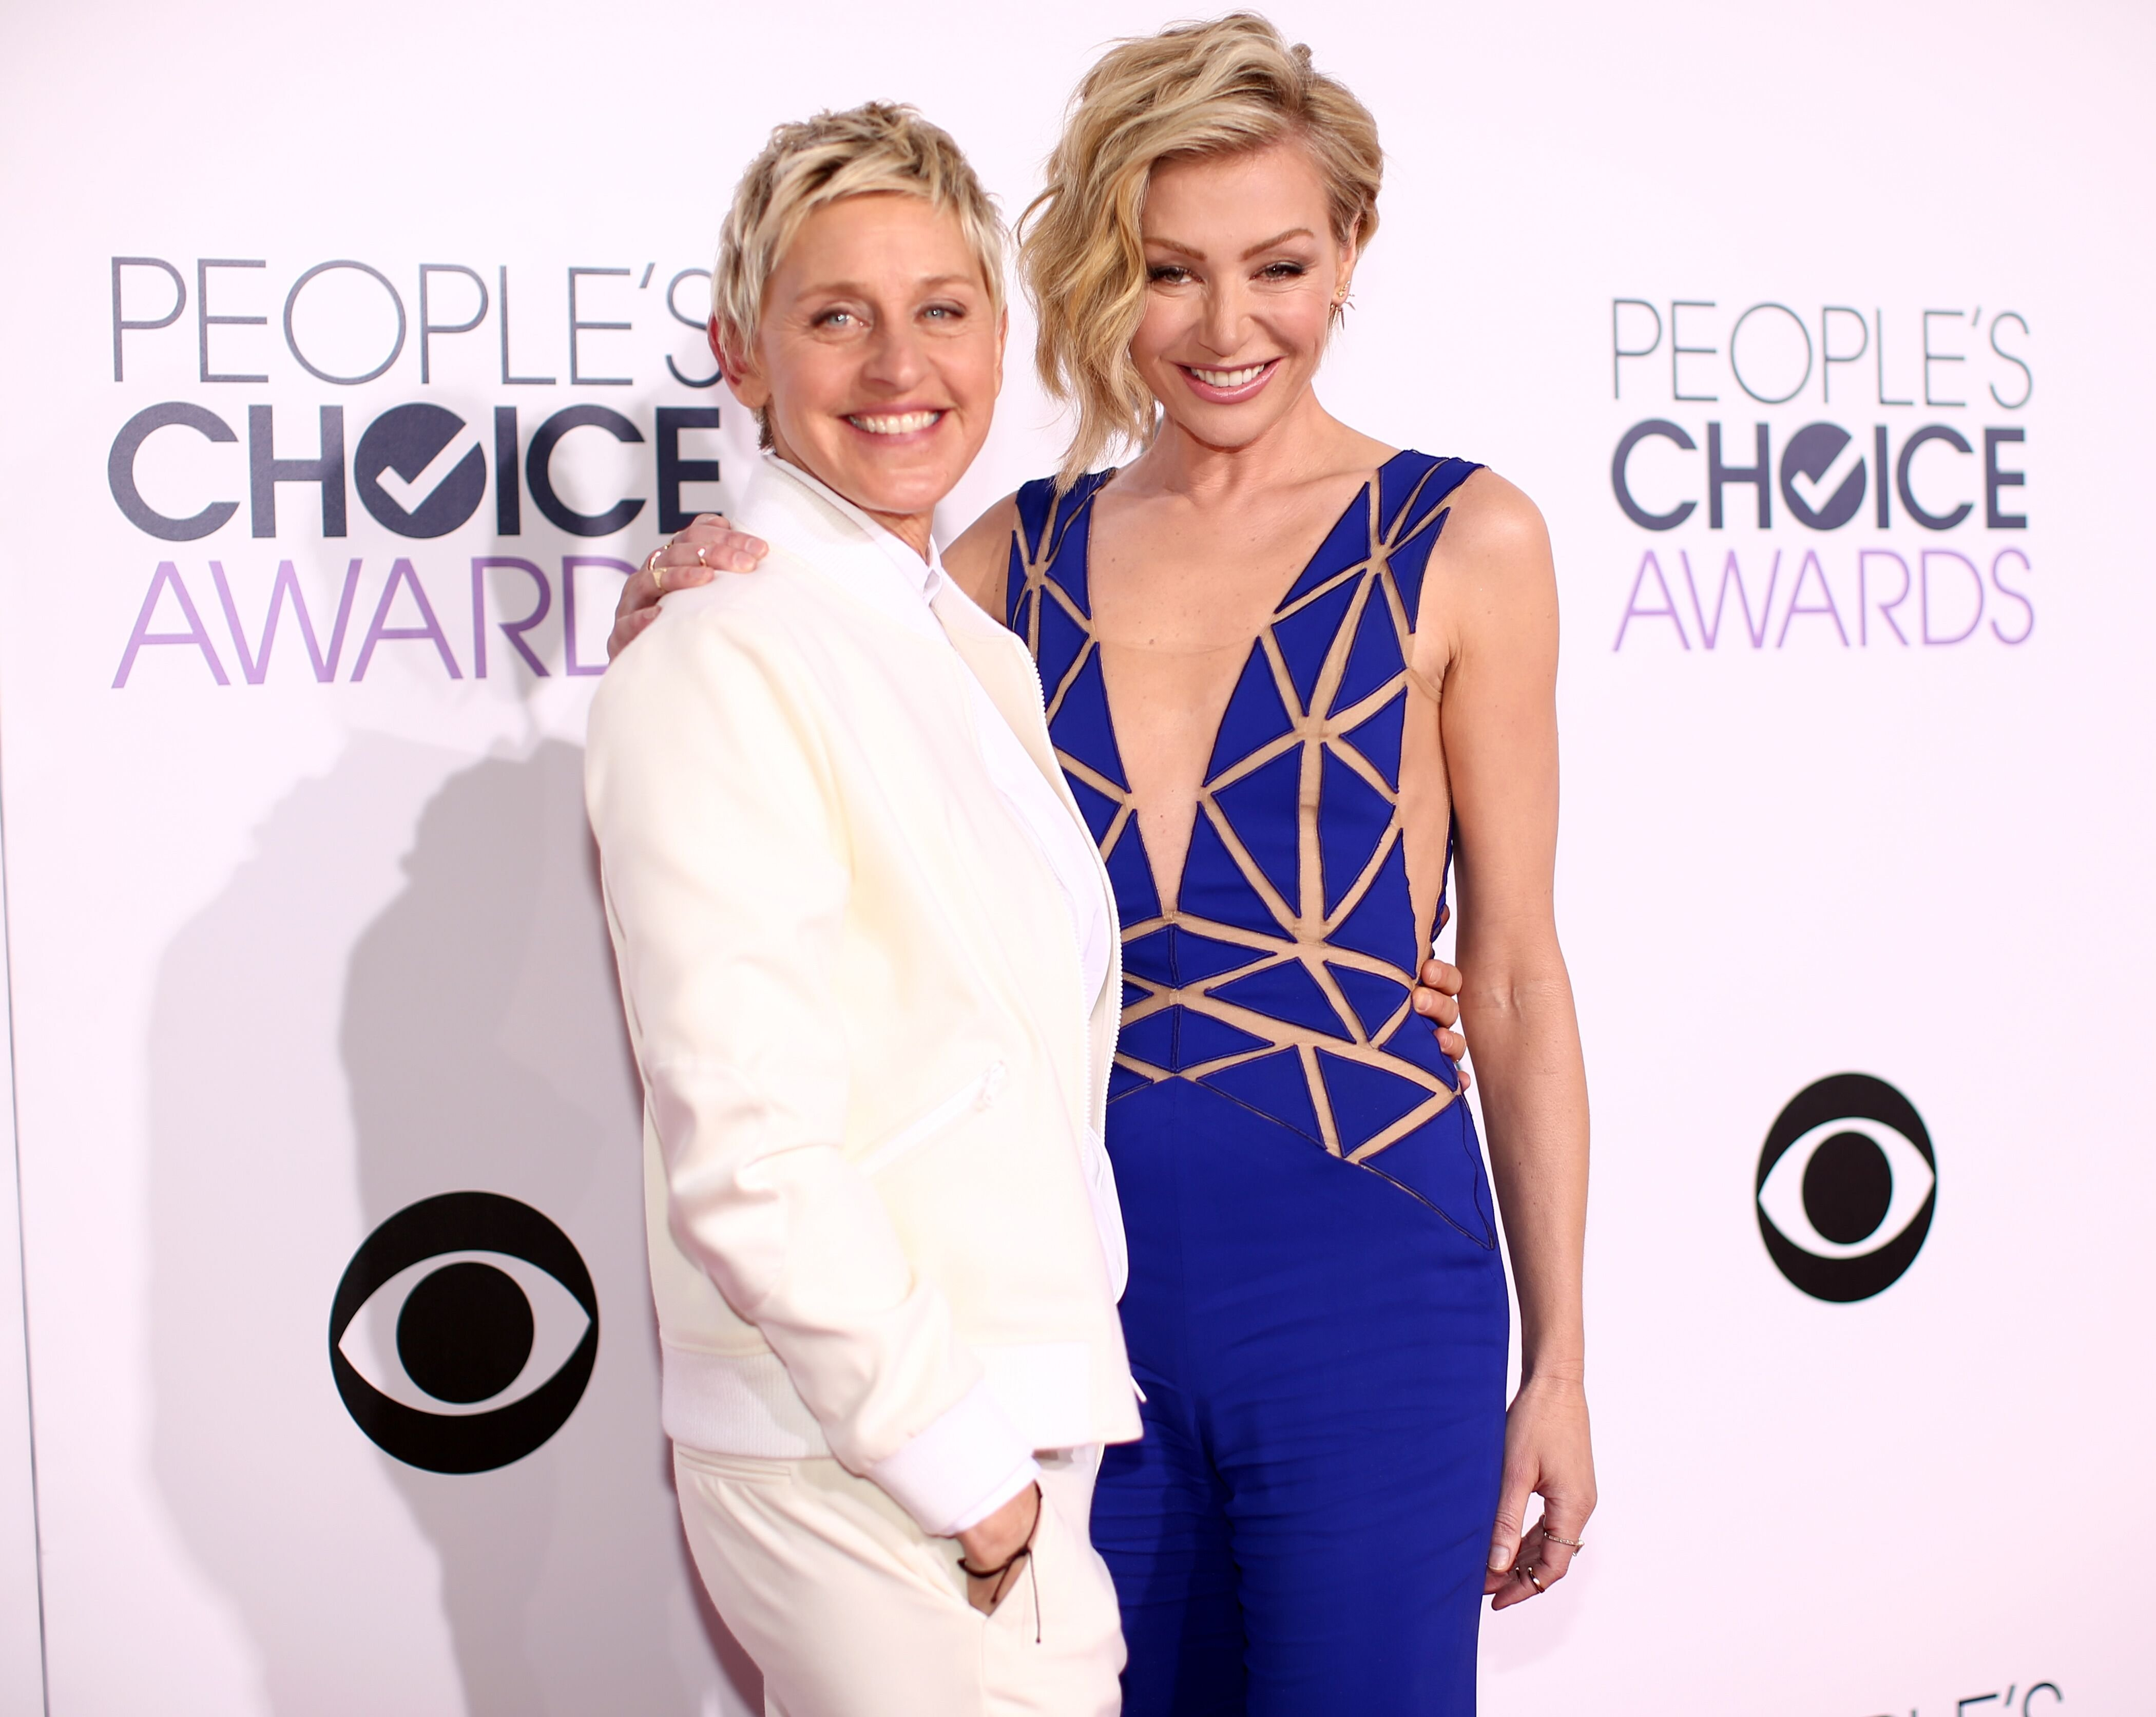 Ellen DeGeneres and Portia de Rossi at the 41st Annual People's Choice Awards in 2015   Source: Getty Images